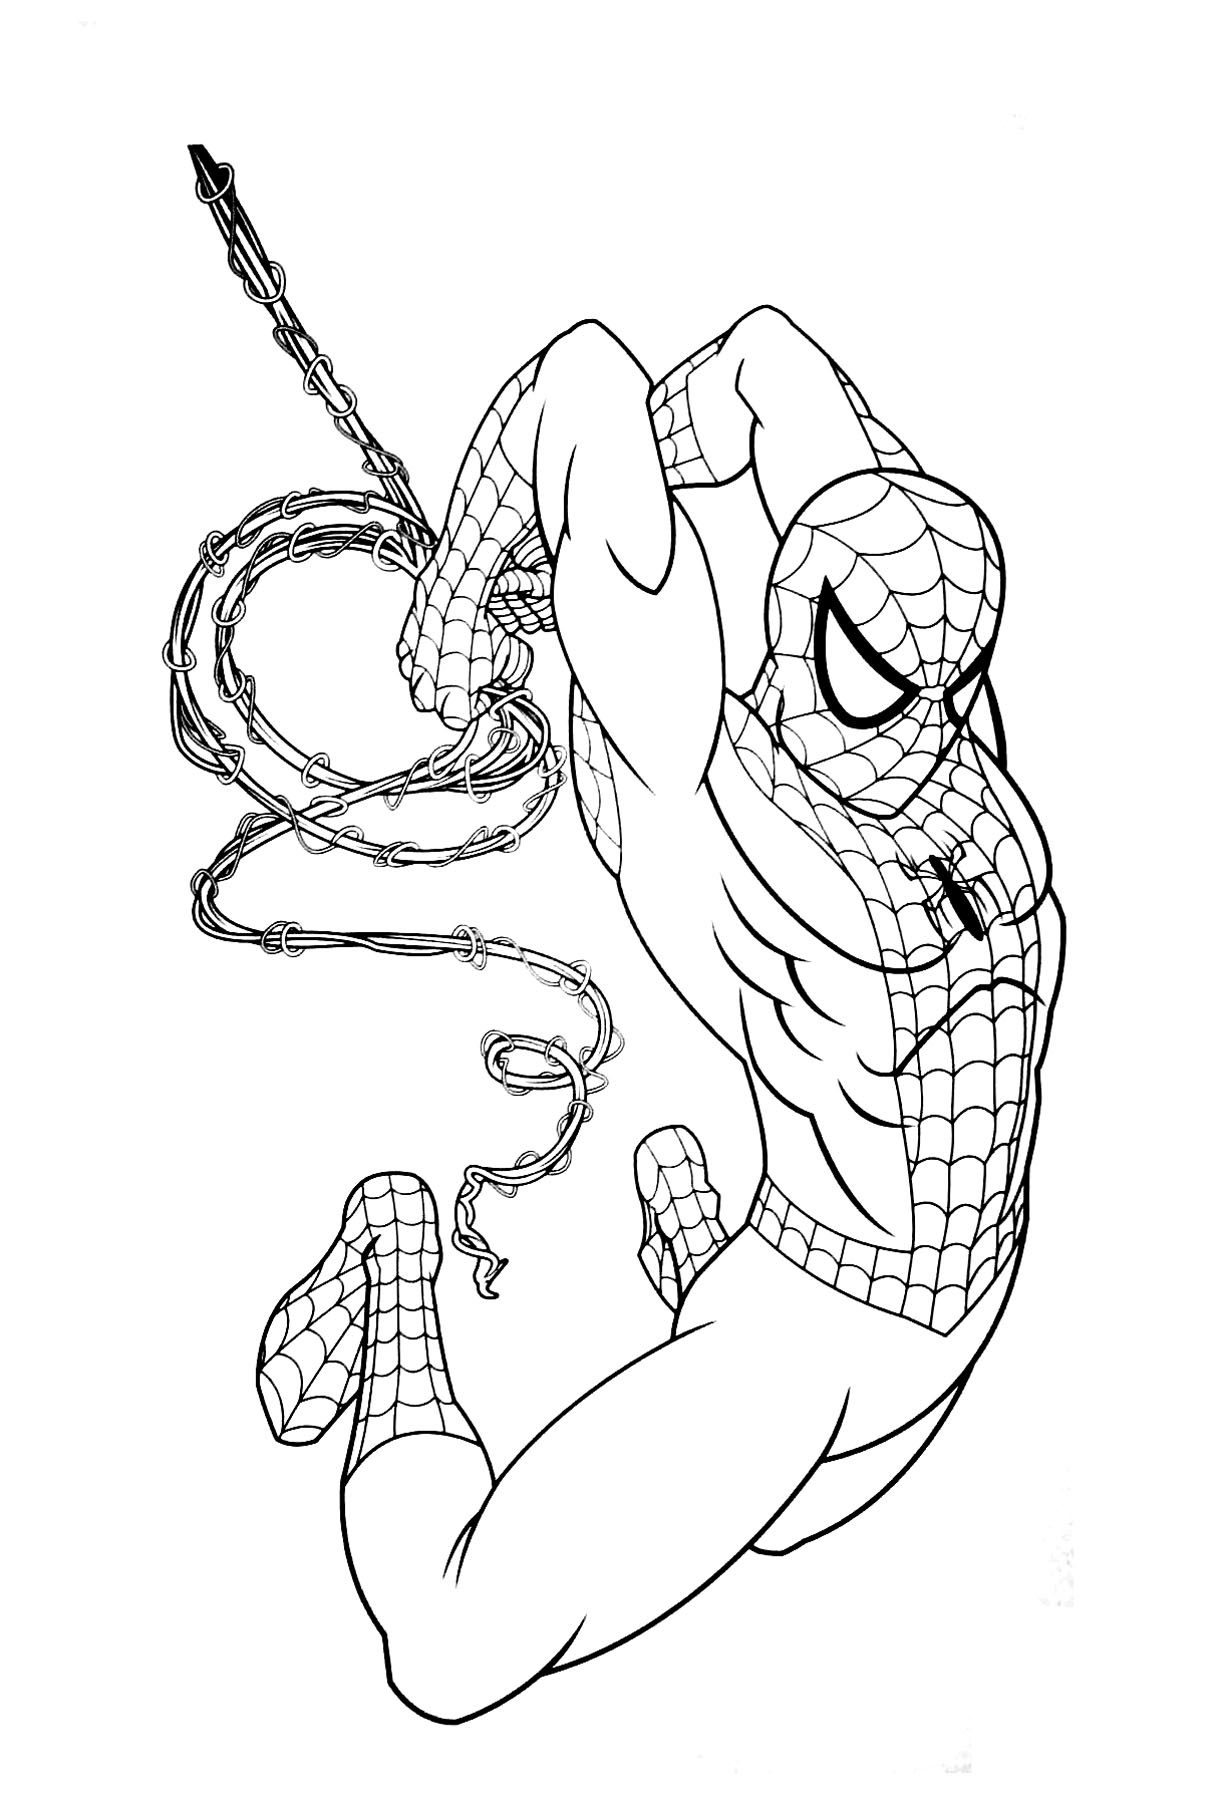 coloring spiderman color spiderman coloring page download for free print coloring spiderman color